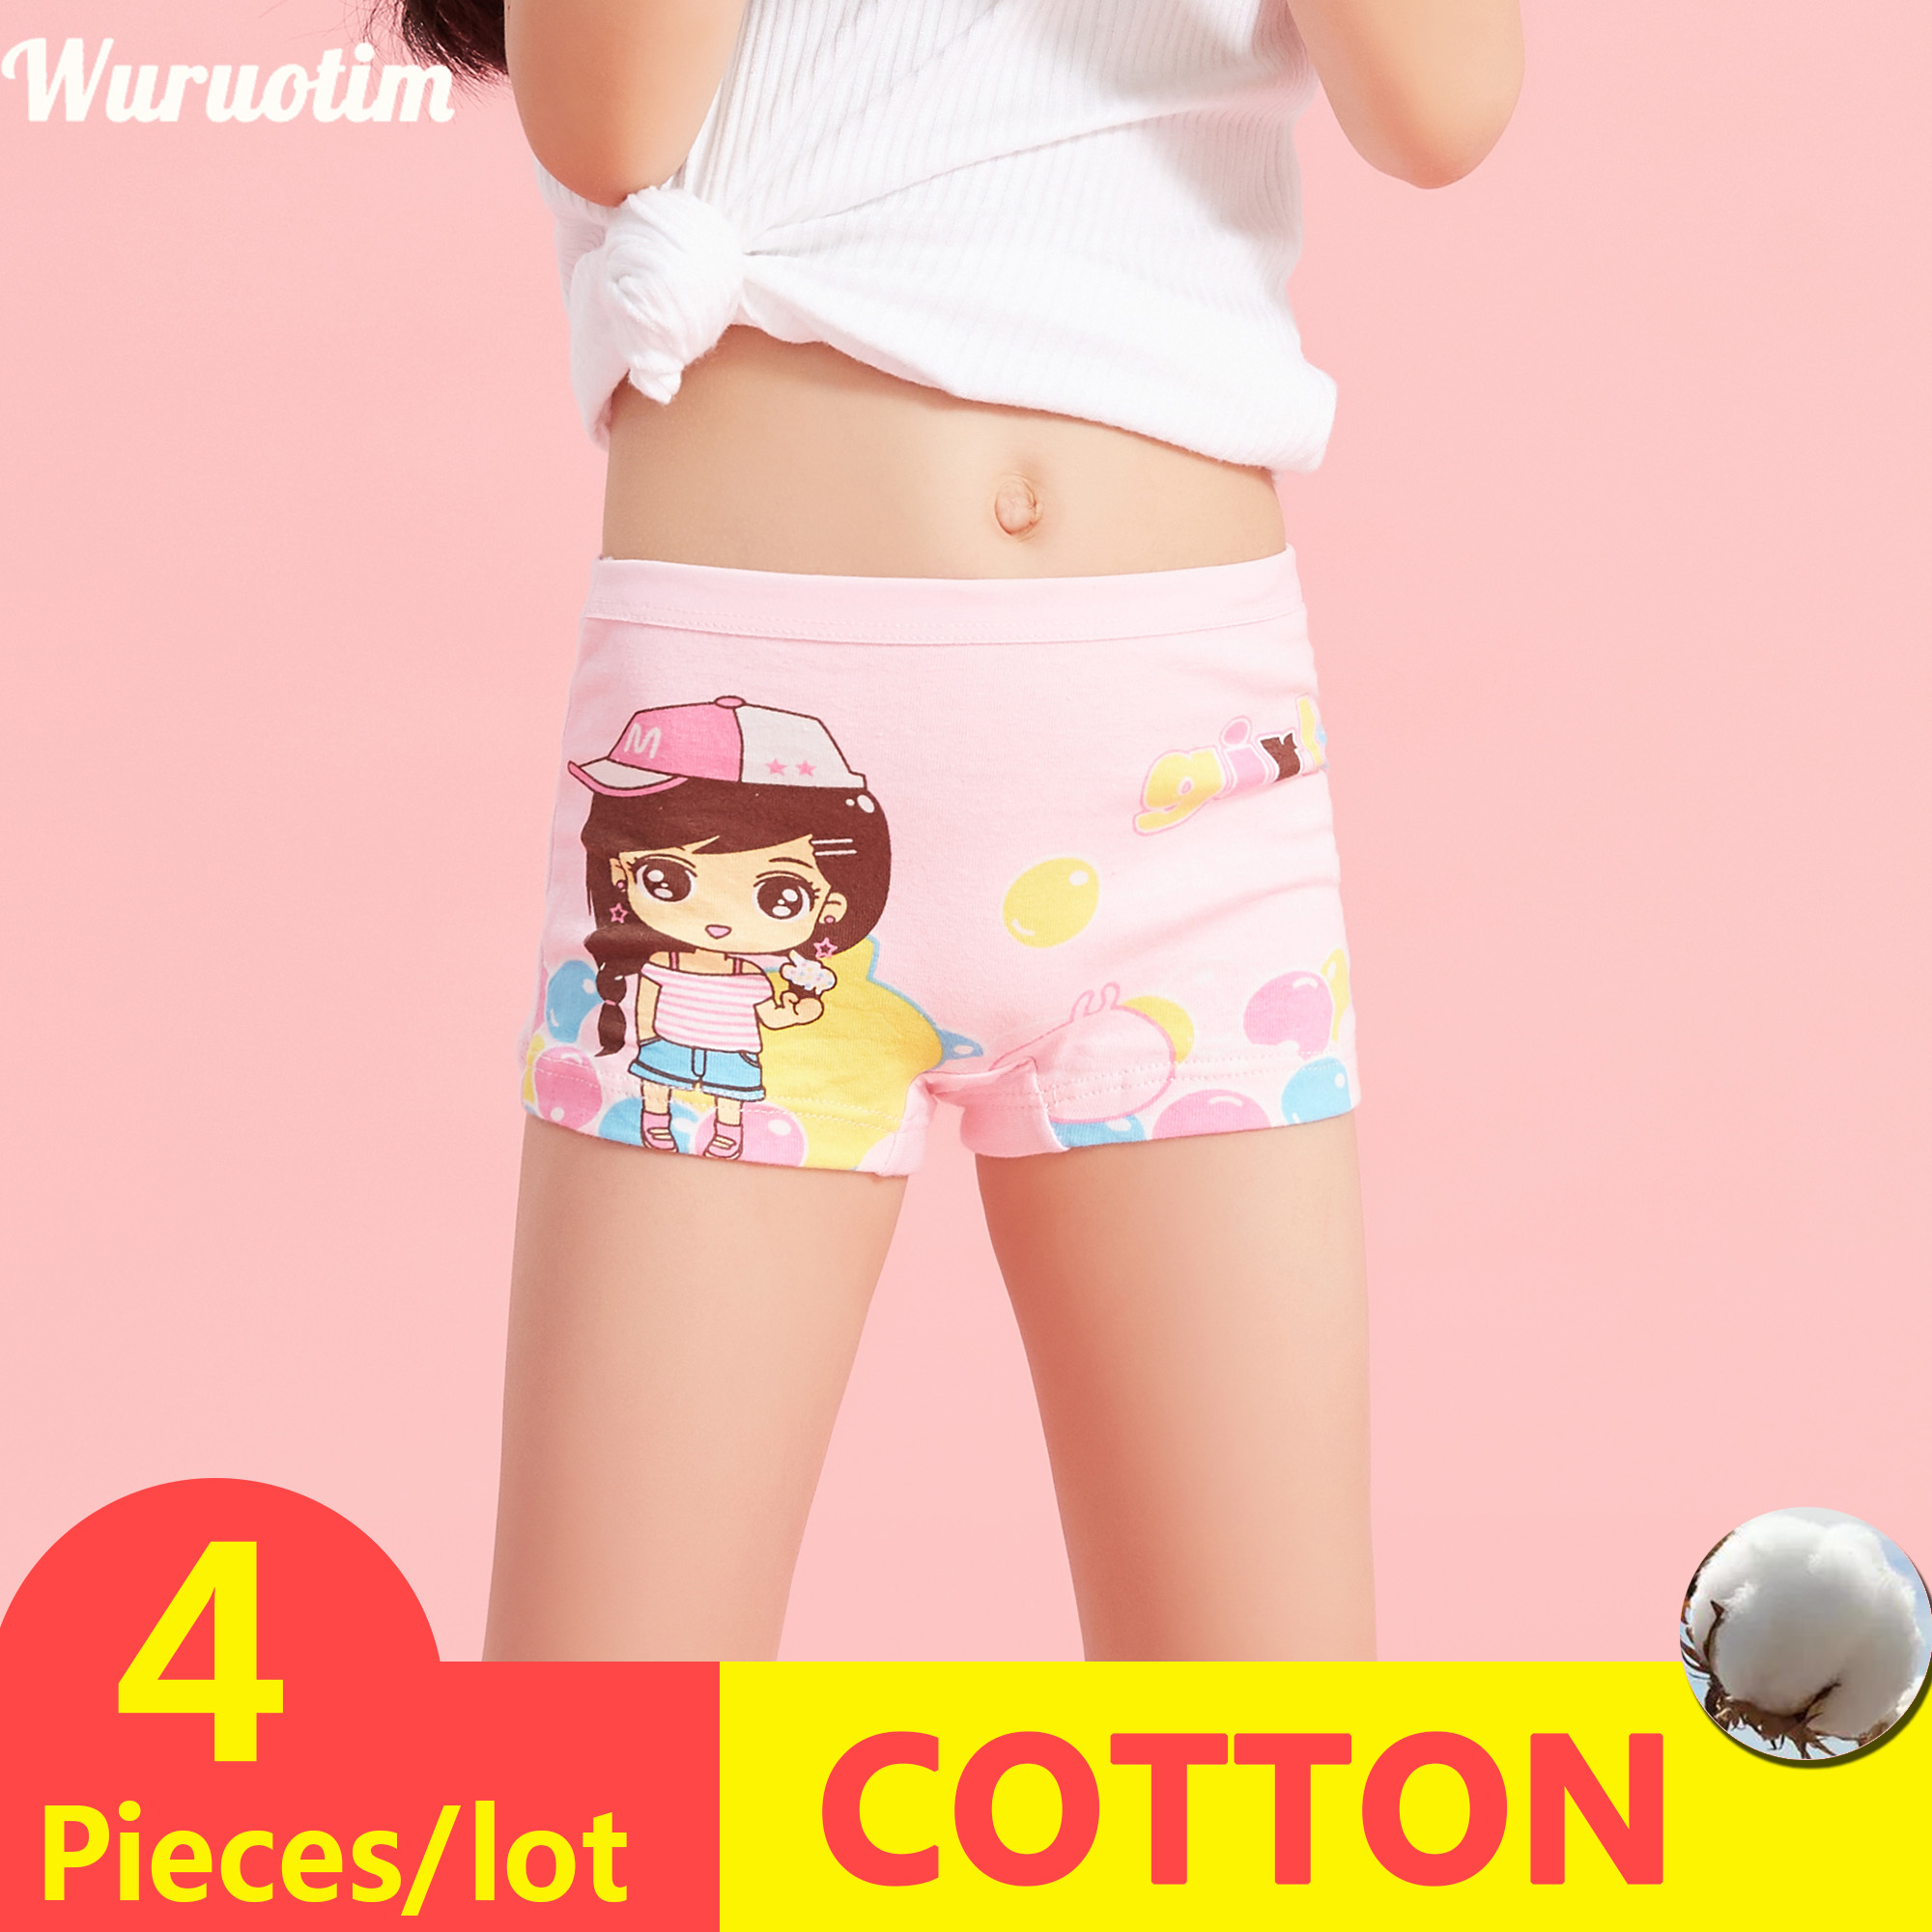 4 Pieces/lot New Design Children Girl Panties Cotton Soft Pretty Cartoon Child Underwear For Kids Boxer Girls Panties Breathable